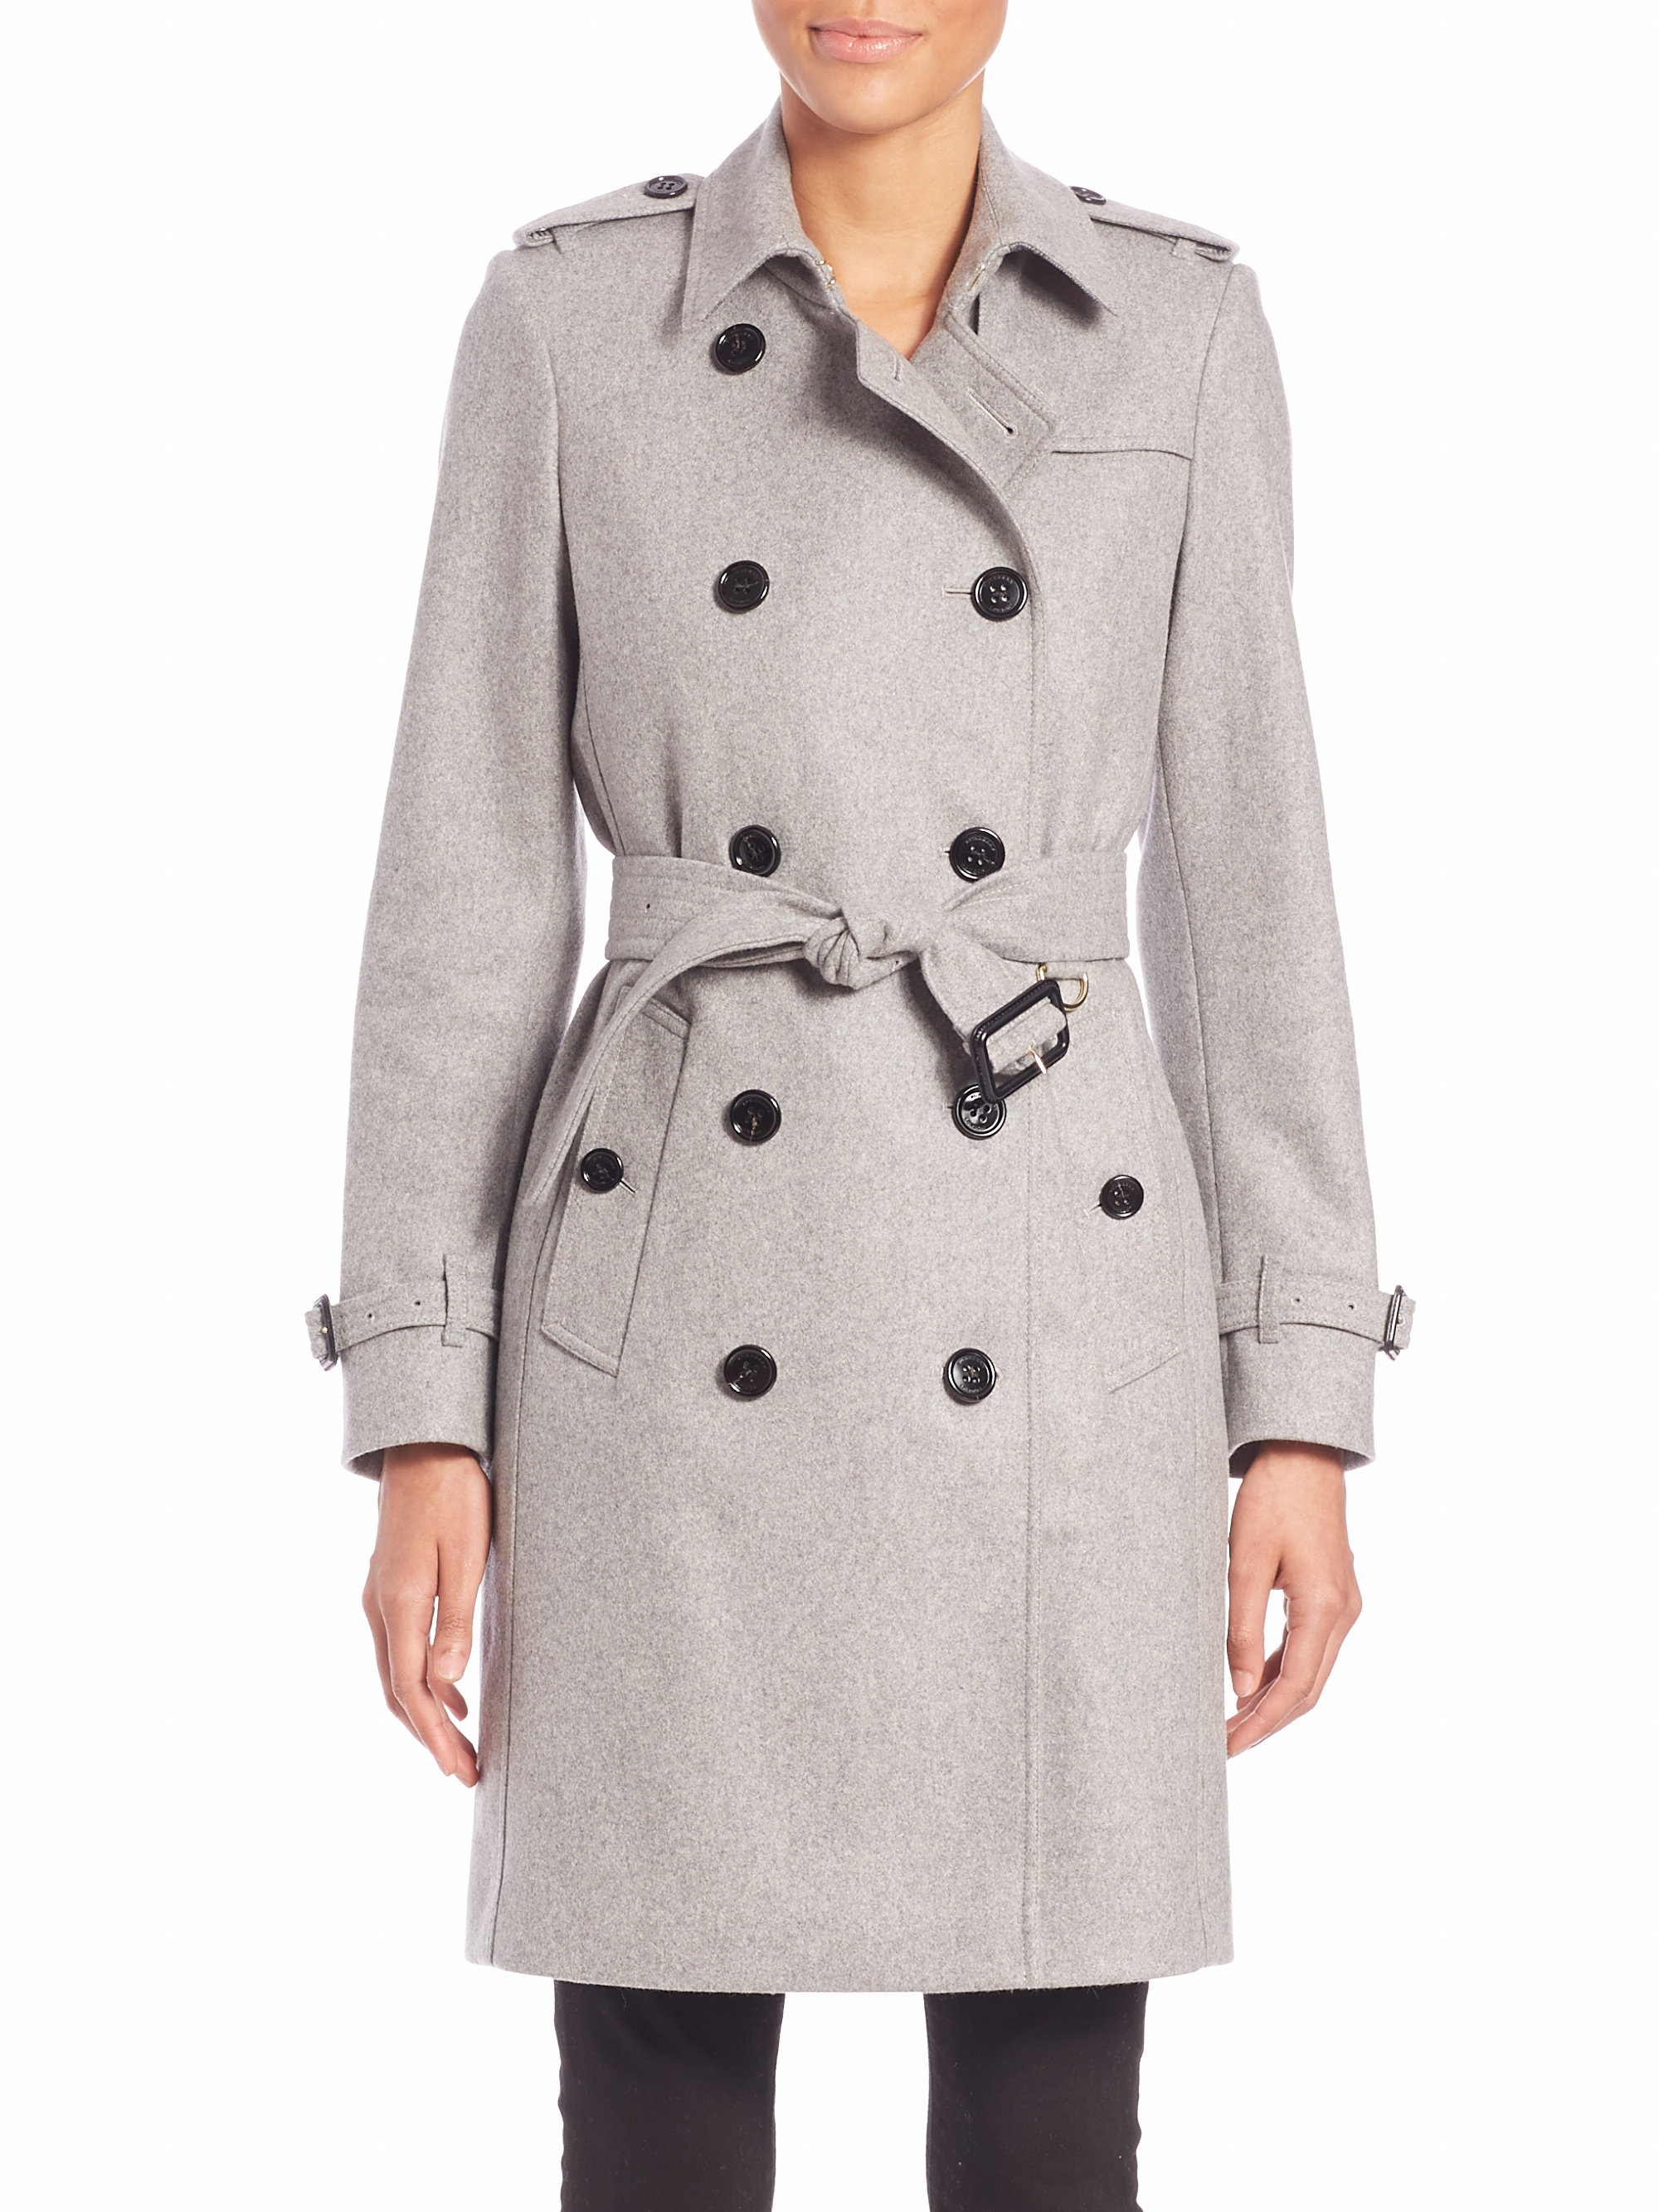 Burberry Kensington Pale Grey Cashmere Trench Coat in Gray | Lyst